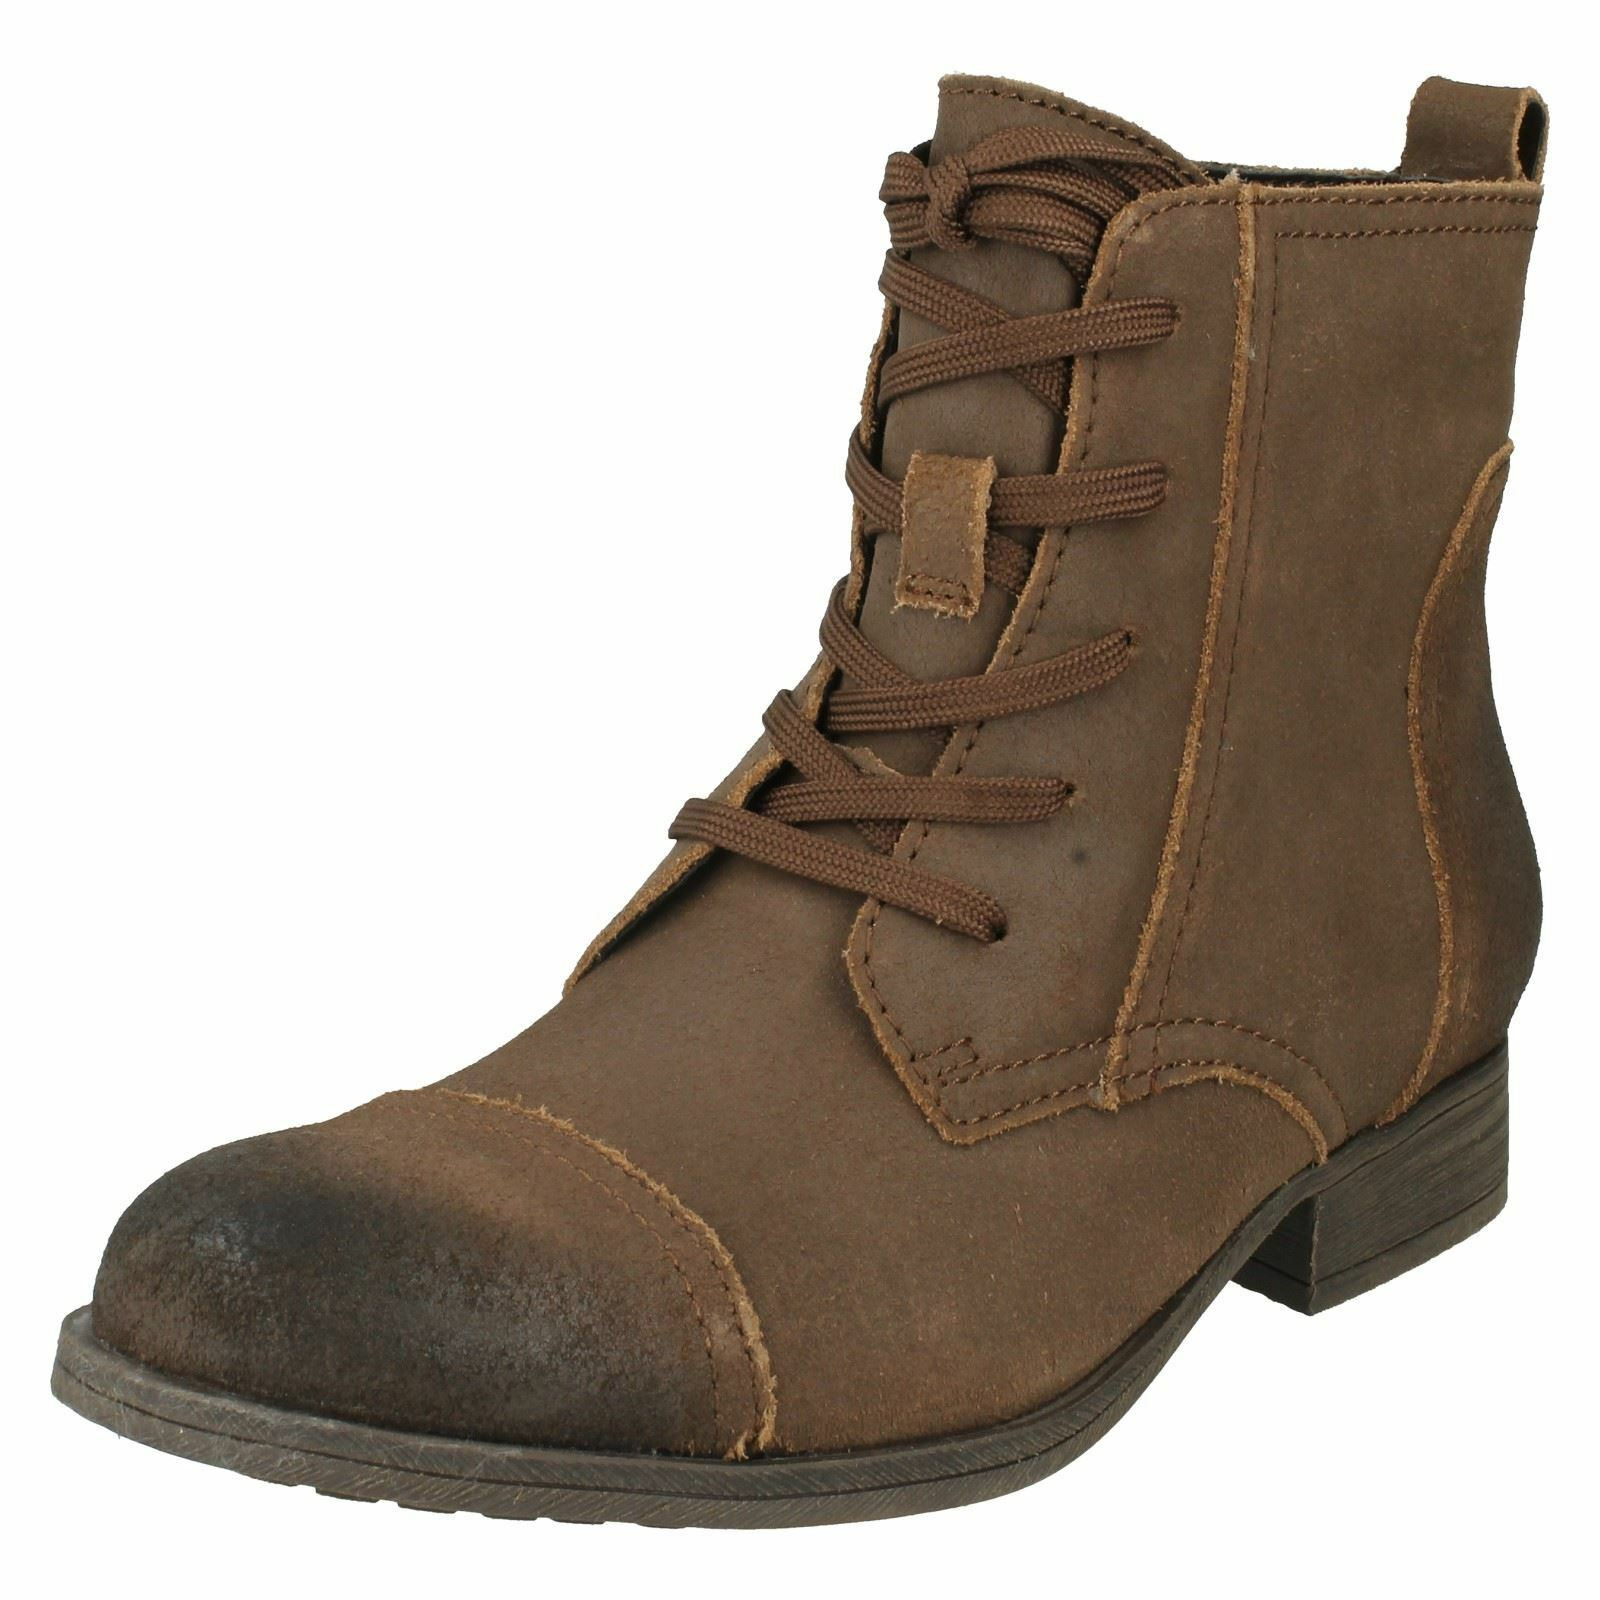 Ladies Clarks womens ankle boots brown Mimic Jazz size 3.5 d